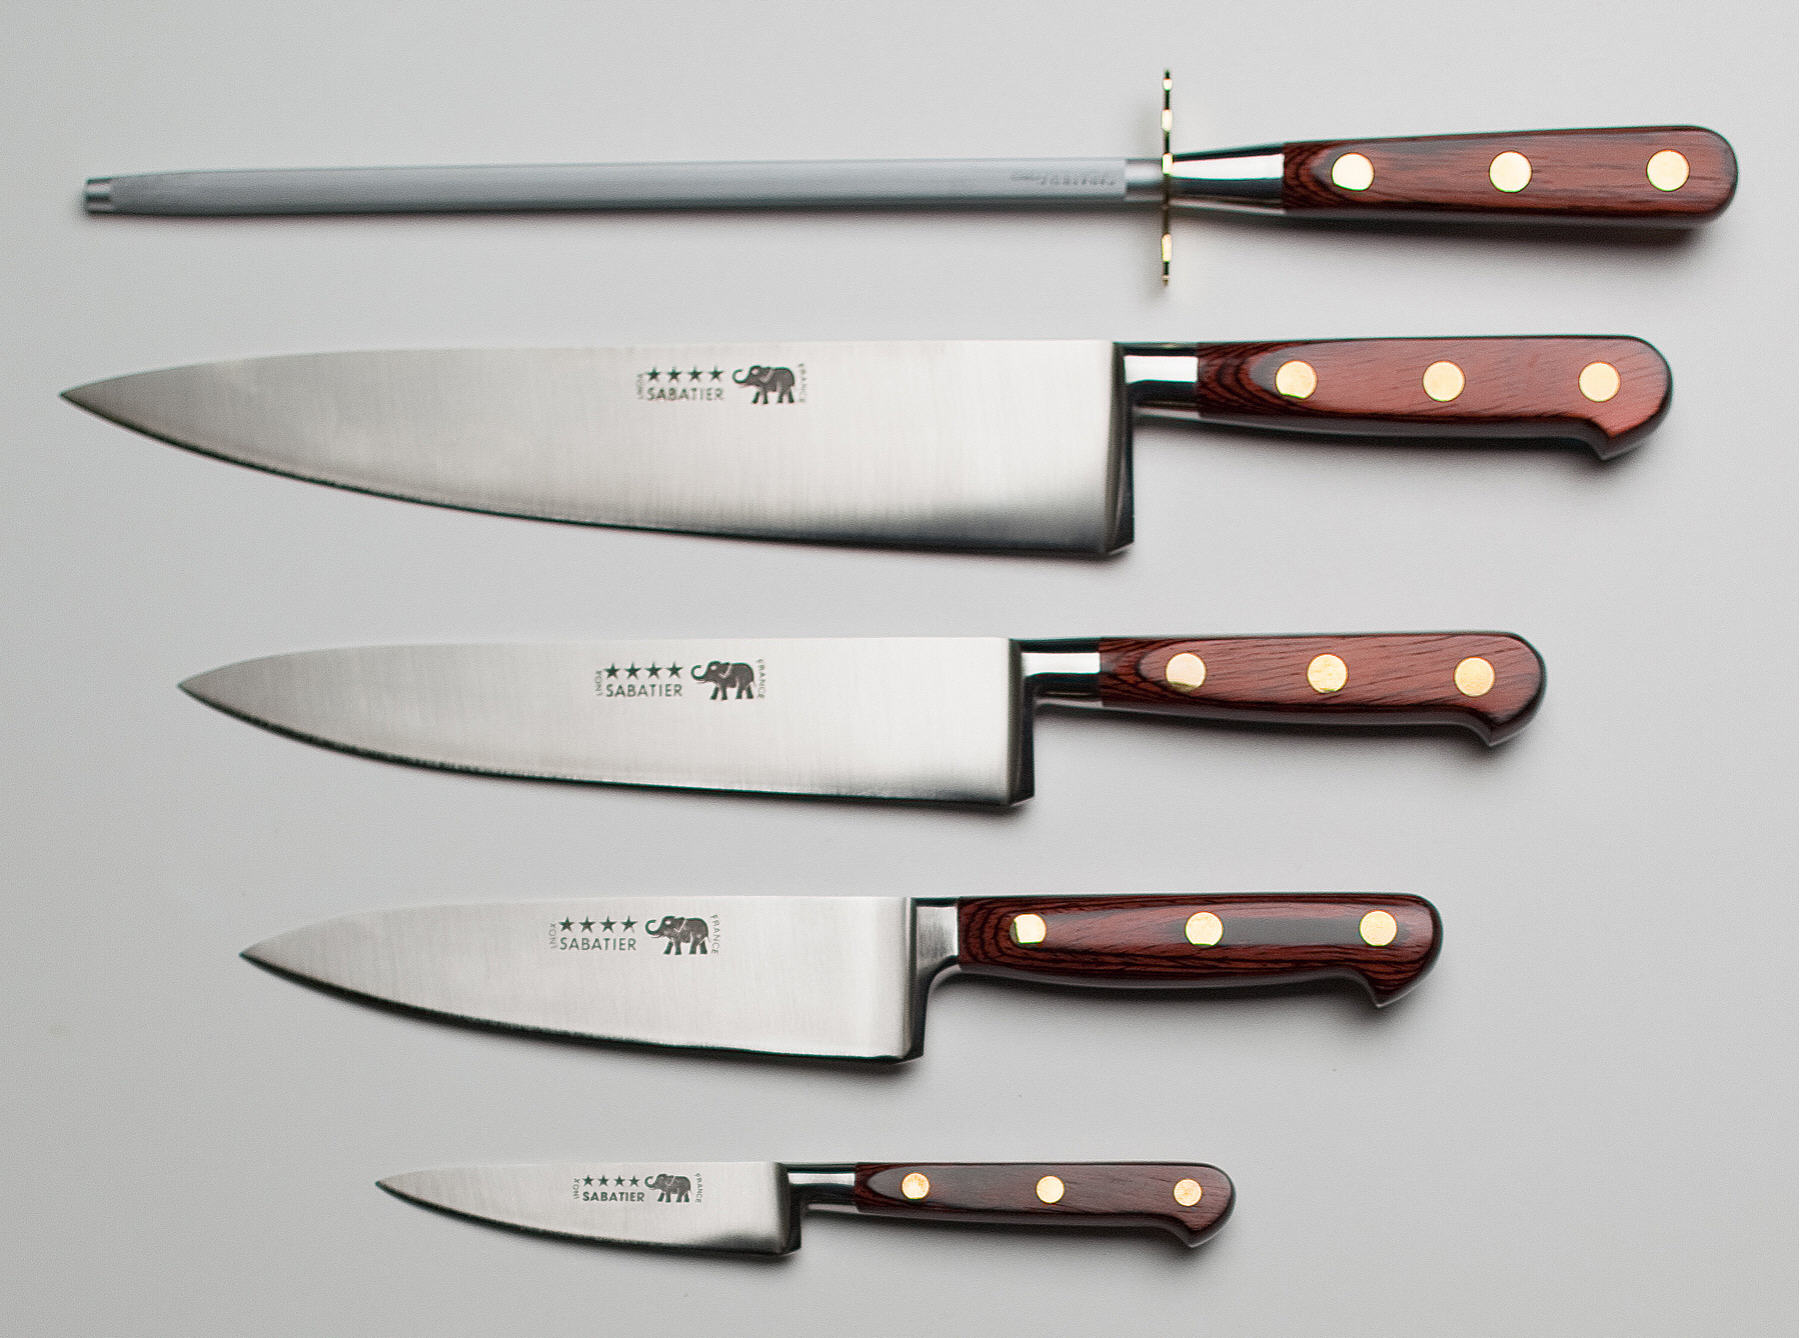 Merveilleux Thiers Issard Four Star Elephant Sabatier Knives 5 Pc Knife Set   Red  Stamina